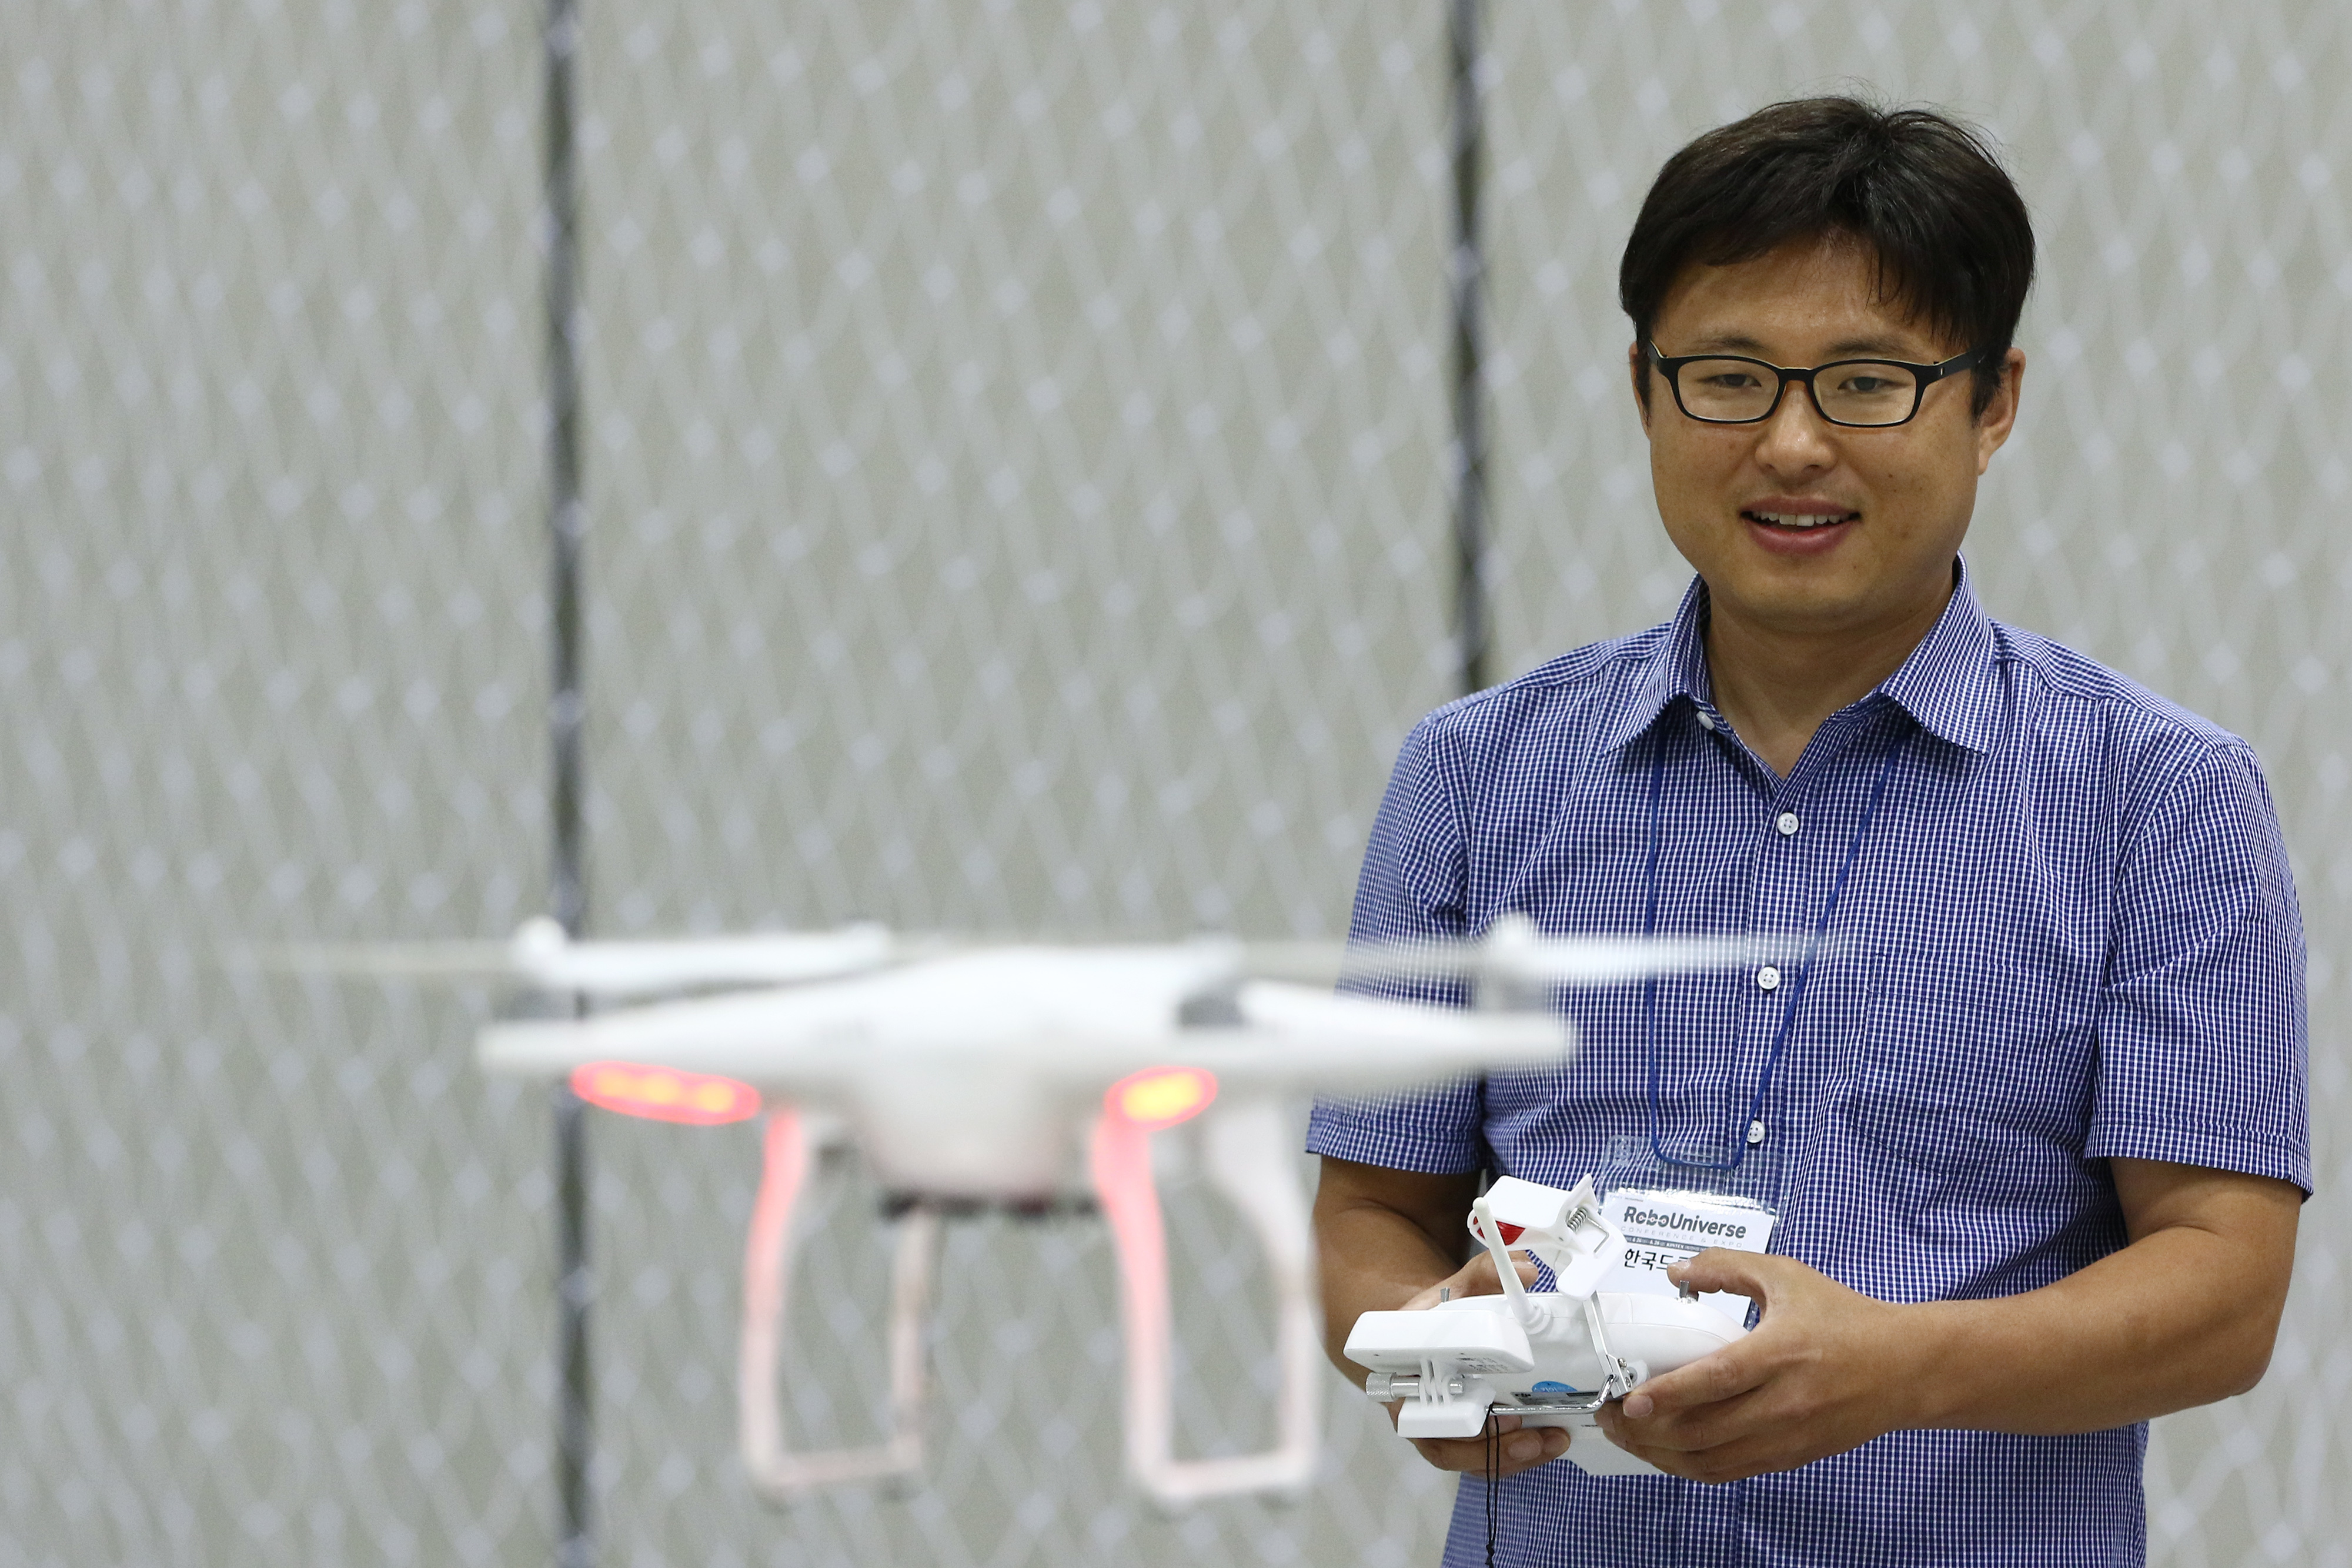 An attendee flies a Phantom 2 drone developed by SZ DJI Technology Co. at the RoboUniverse Conference & Expo in Goyang, South Korea, on Wednesday, June 24, 2015.